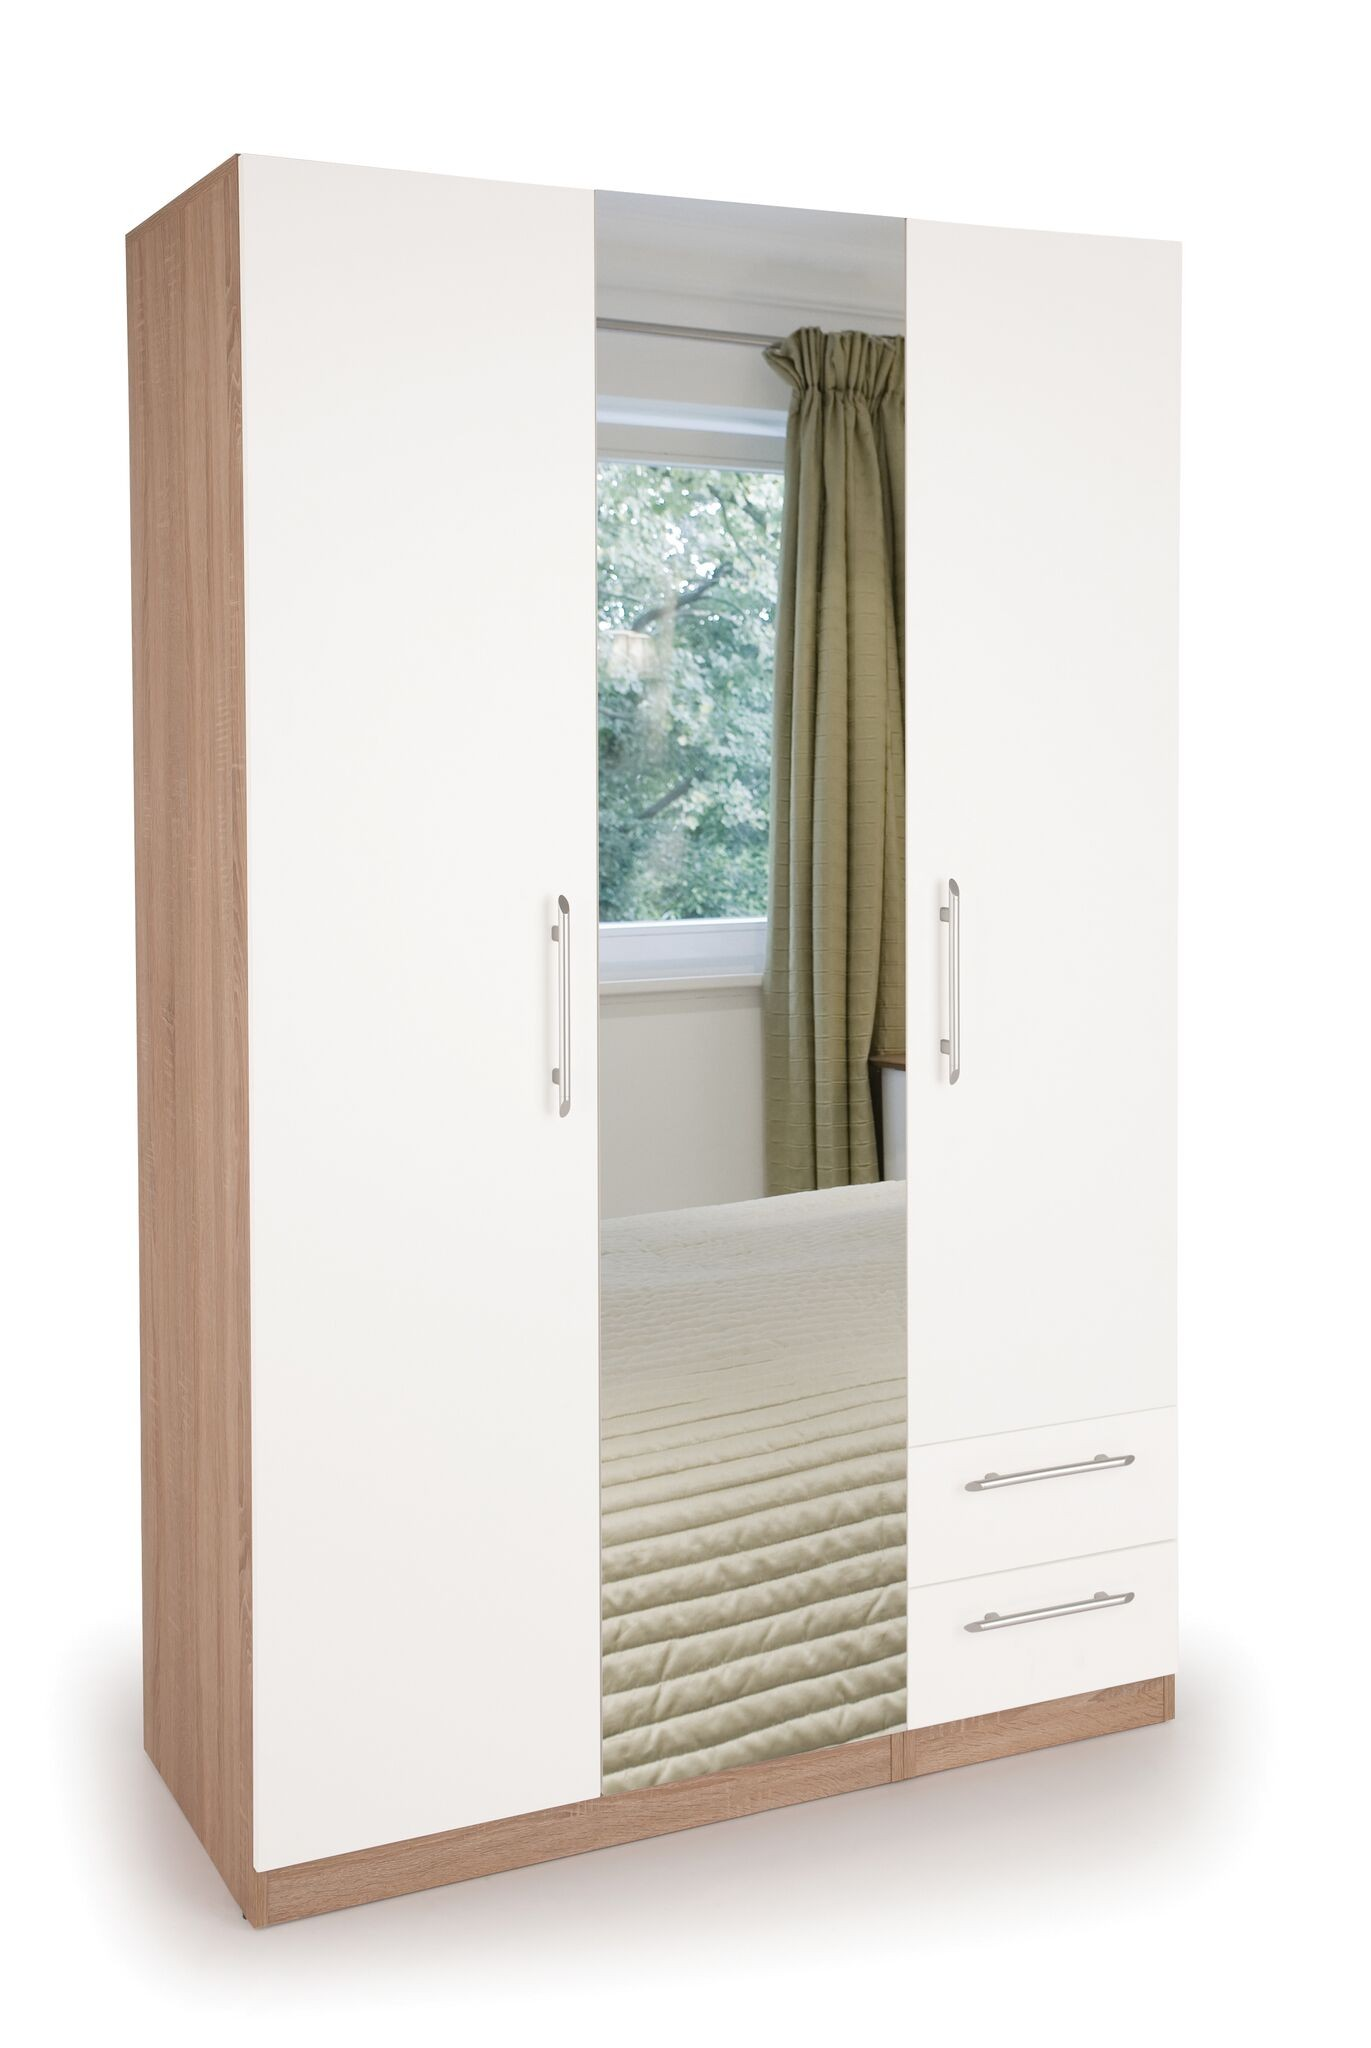 Connect Hyde 3 Door Wardrobe with 2 Drawers and Mirror